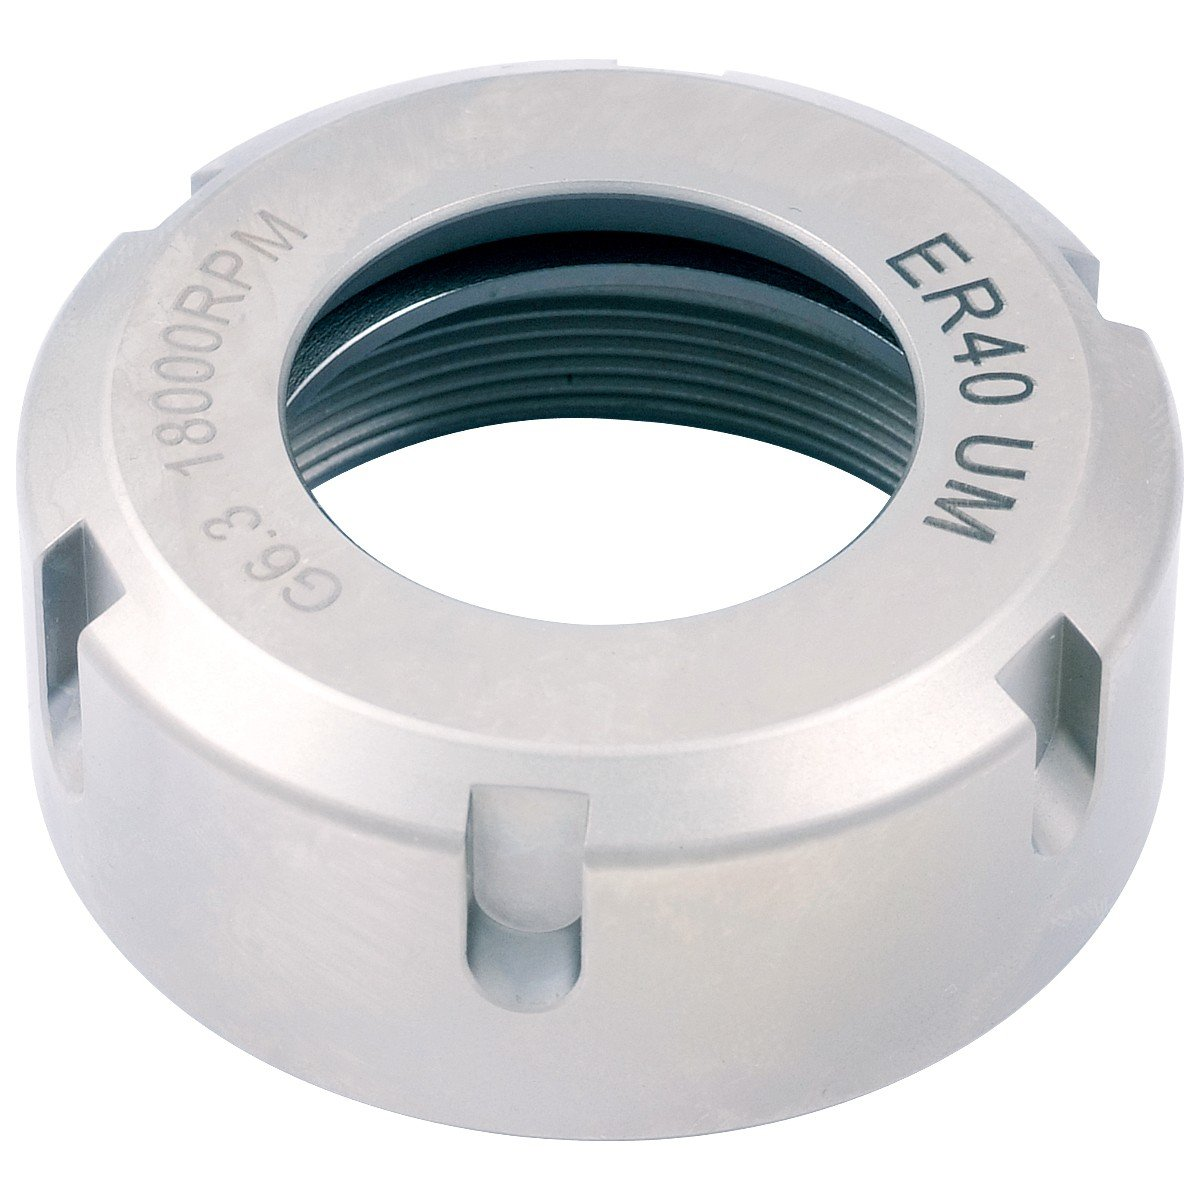 Pro Series by HHIP 3900-0690 Collet Chuck Nut, Um-Type Er25, 18000 Rpm